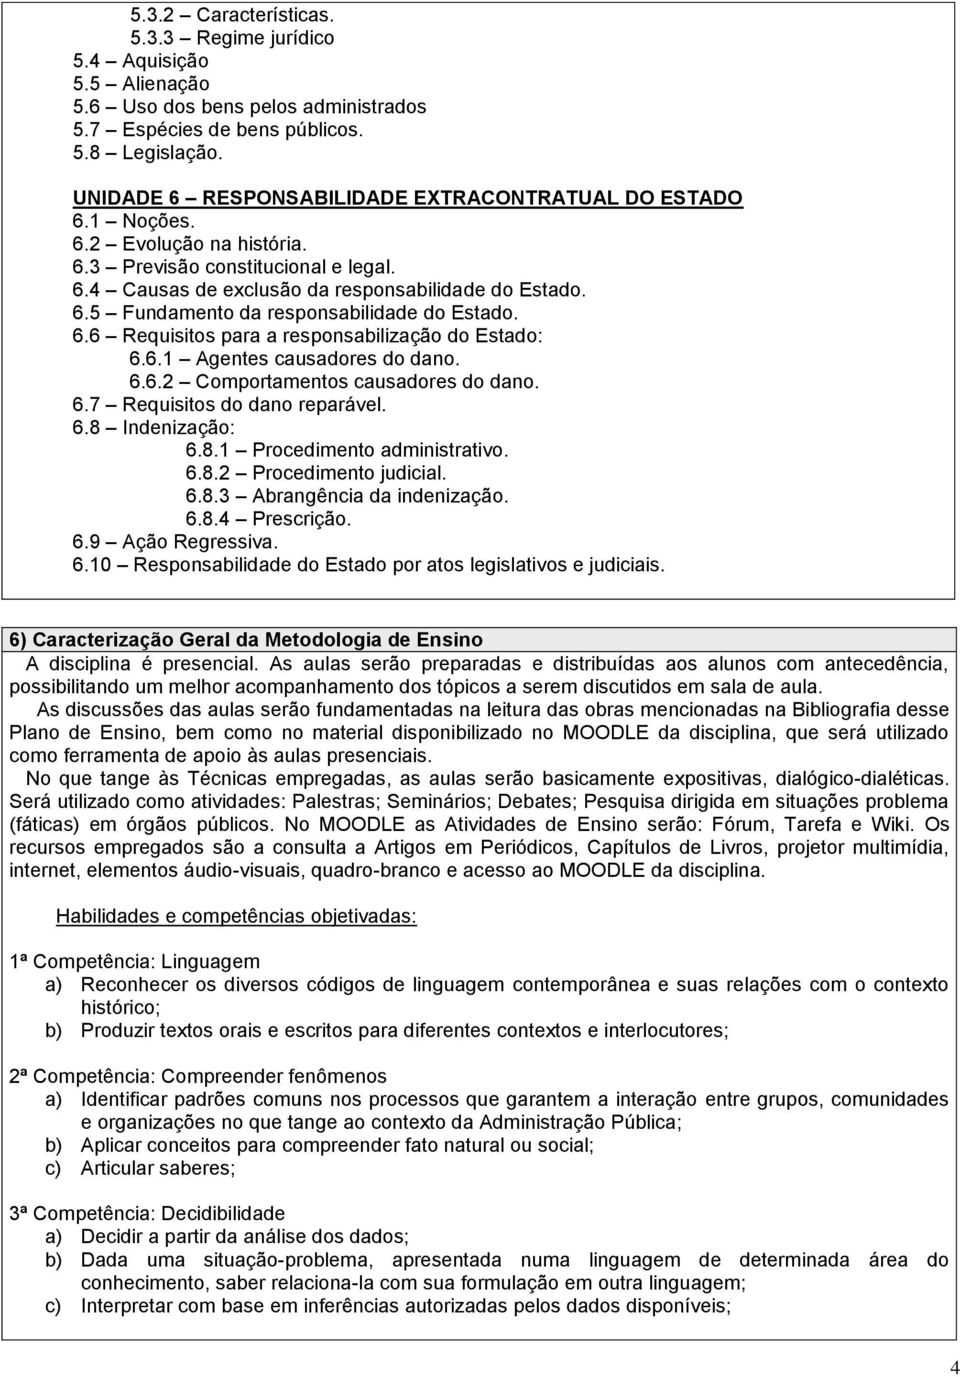 6.6 Requisitos para a responsabilização do Estado: 6.6.1 Agentes causadores do dano. 6.6.2 Comportamentos causadores do dano. 6.7 Requisitos do dano reparável. 6.8 Indenização: 6.8.1 Procedimento administrativo.